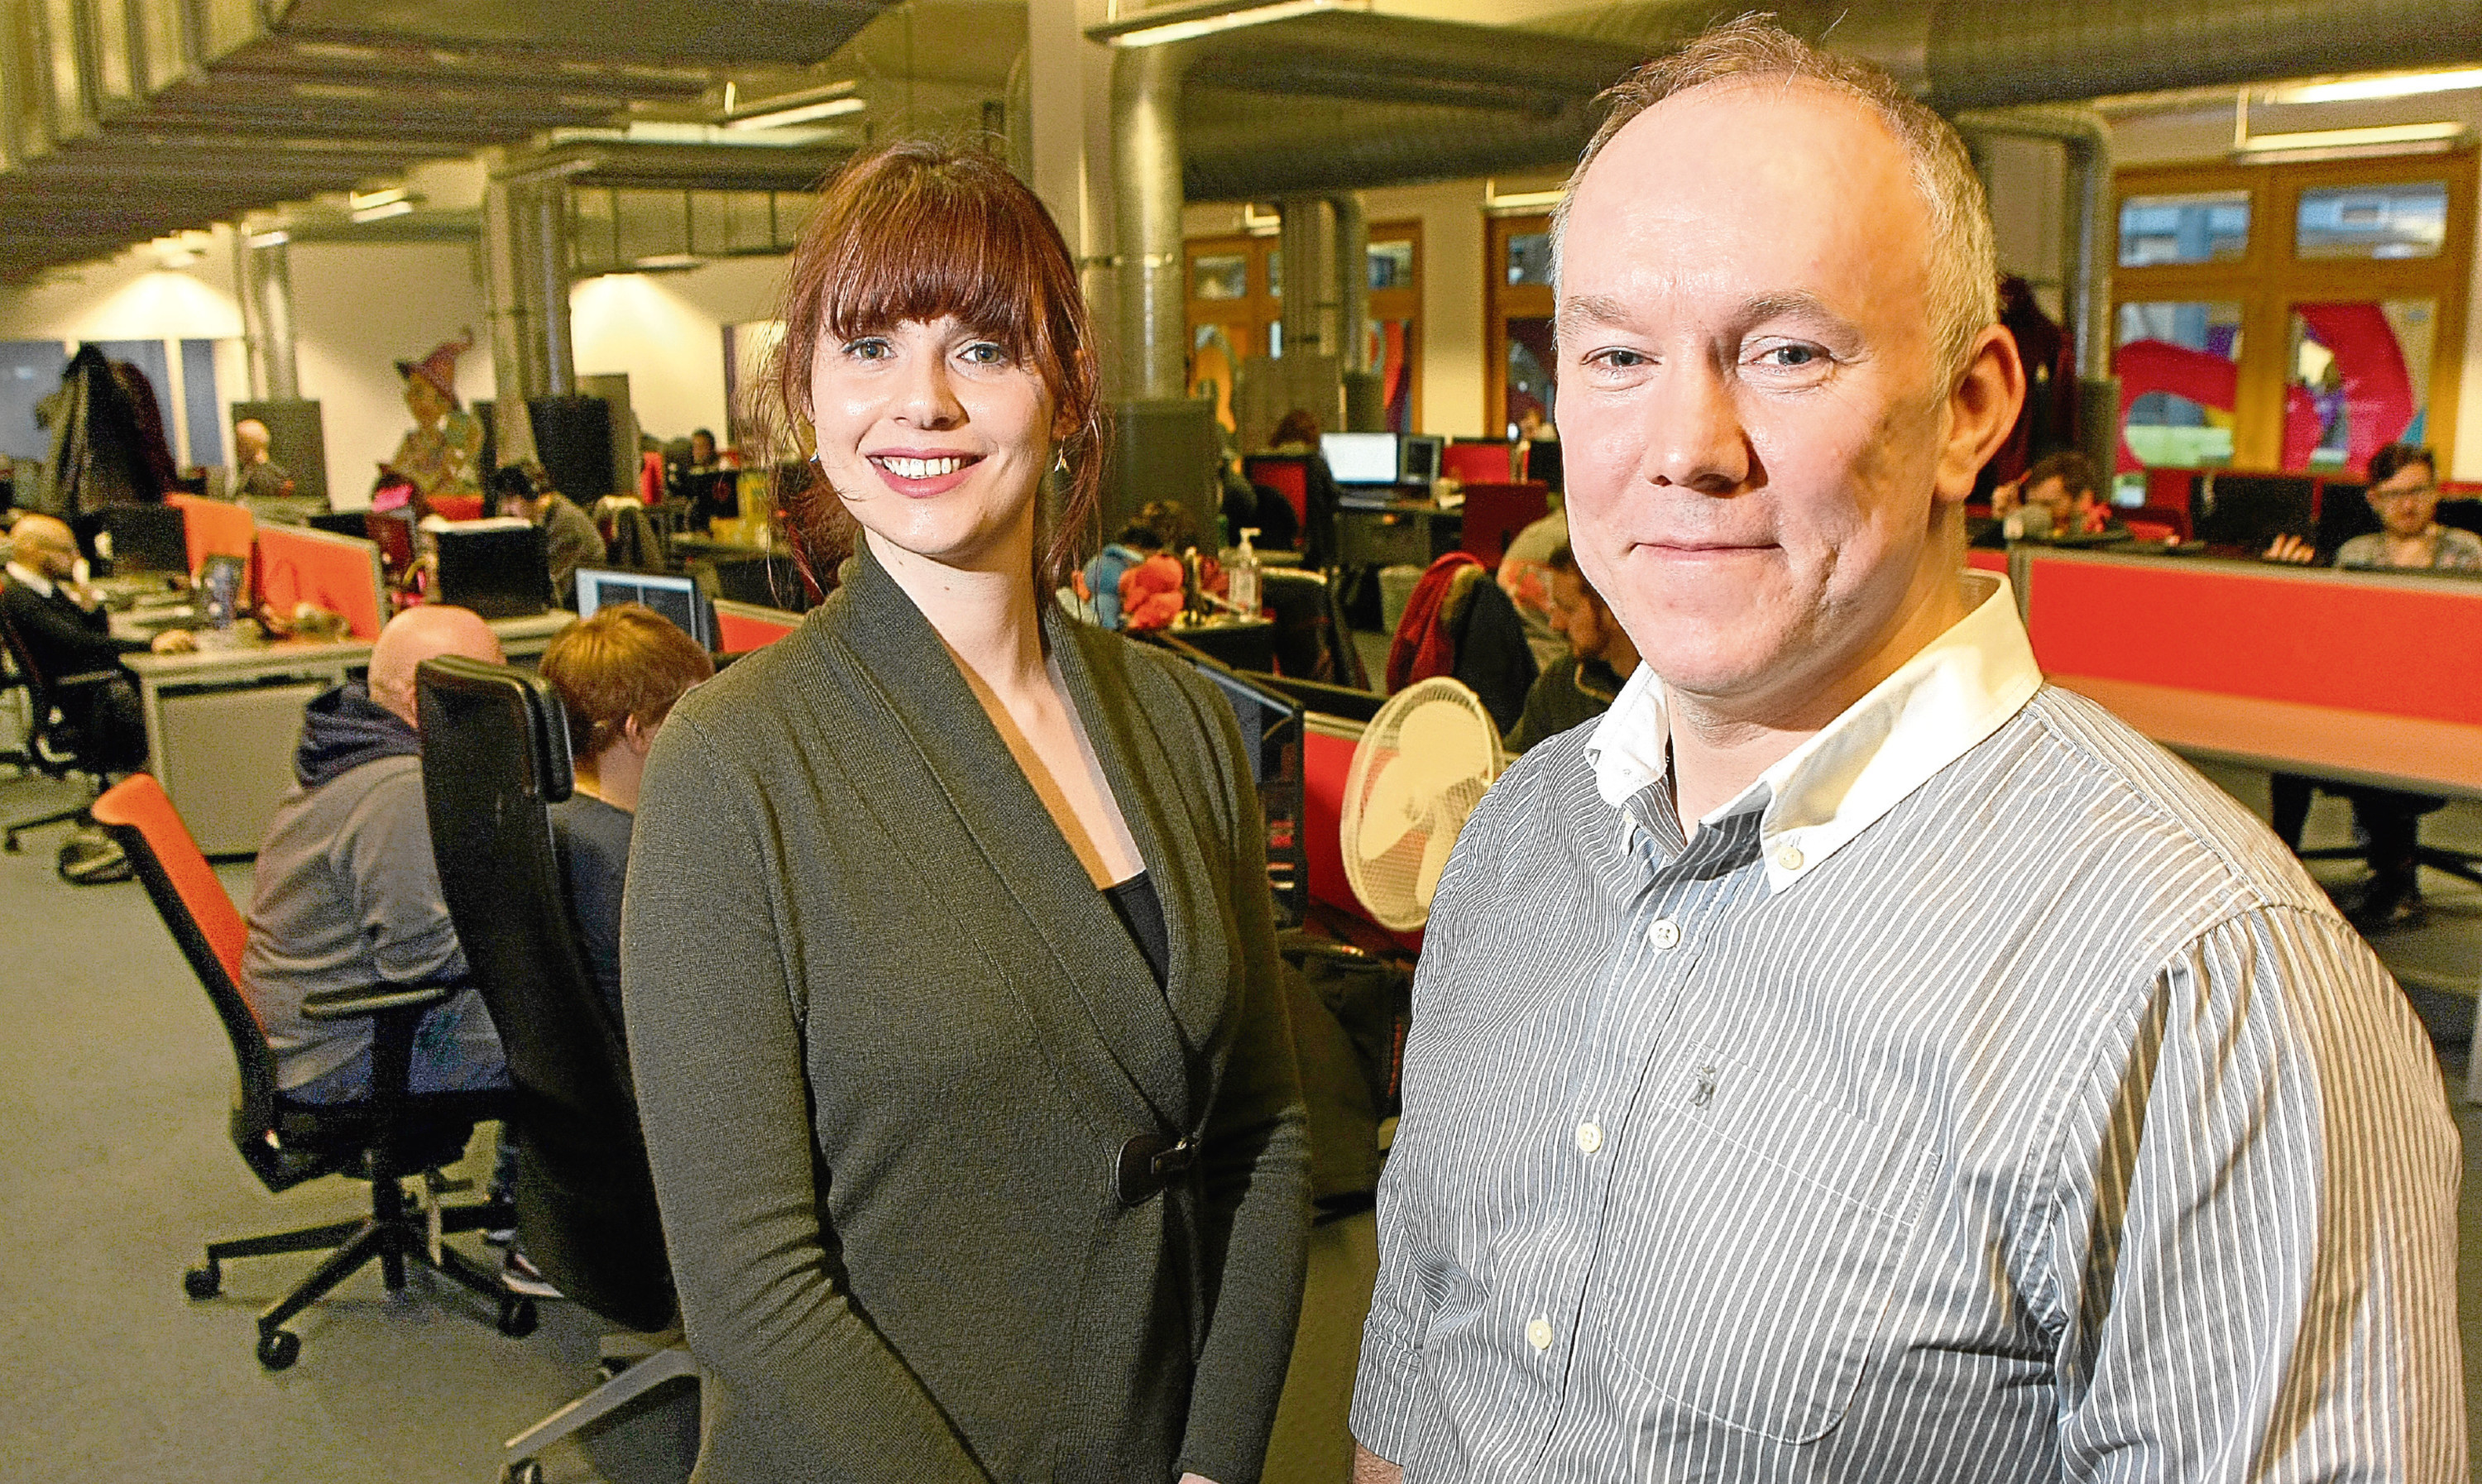 Lynne Martin - Project Manager at Elevator and Andy Campbell - Accelerator Manager at Elevator in Outplay Entertainment's offices